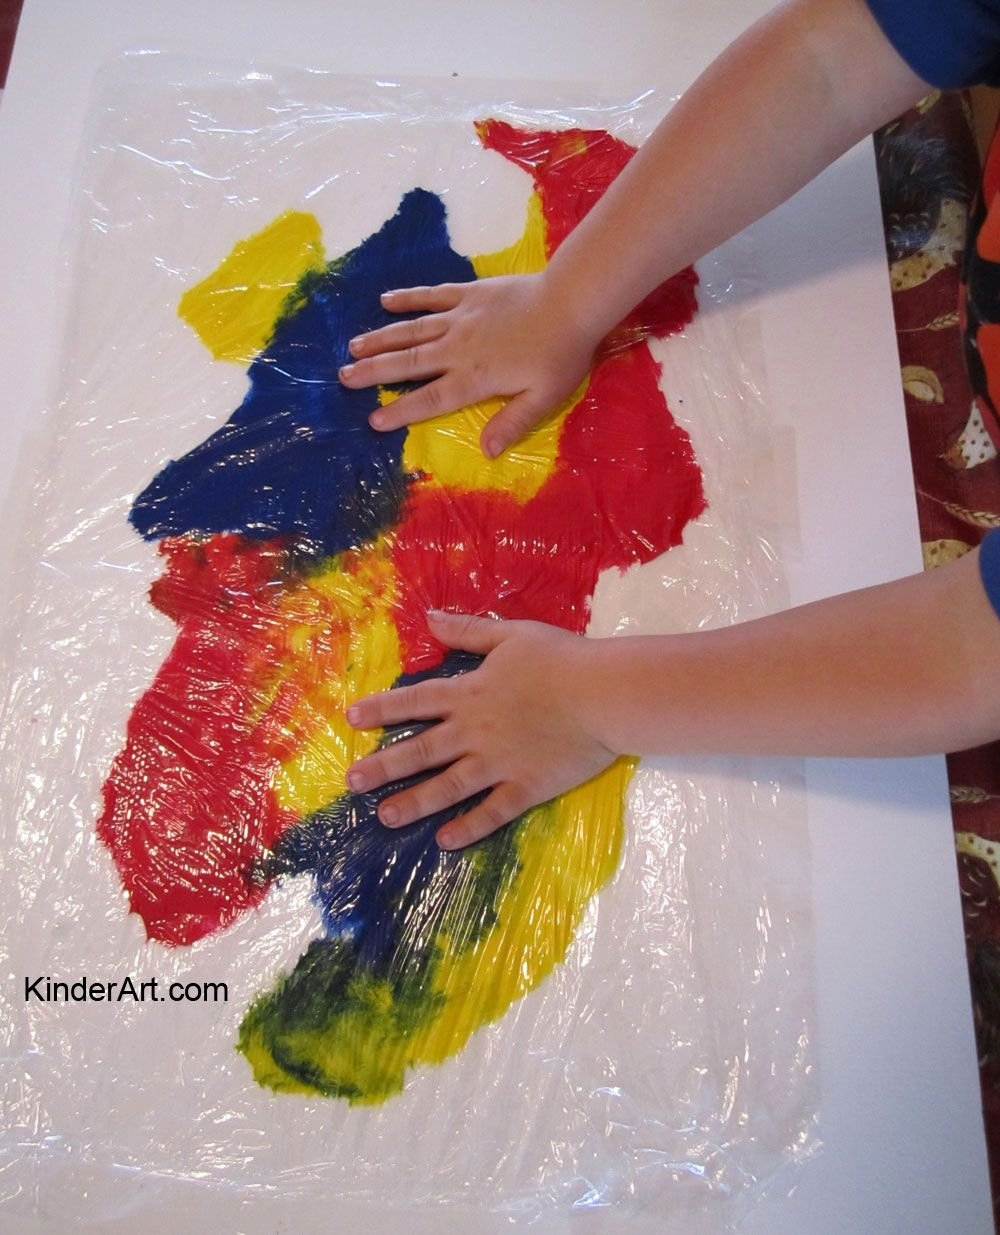 Lessons Plans for toddlers Luxury Kinderart Blog Art Lessons and Lesson Plans for Kids